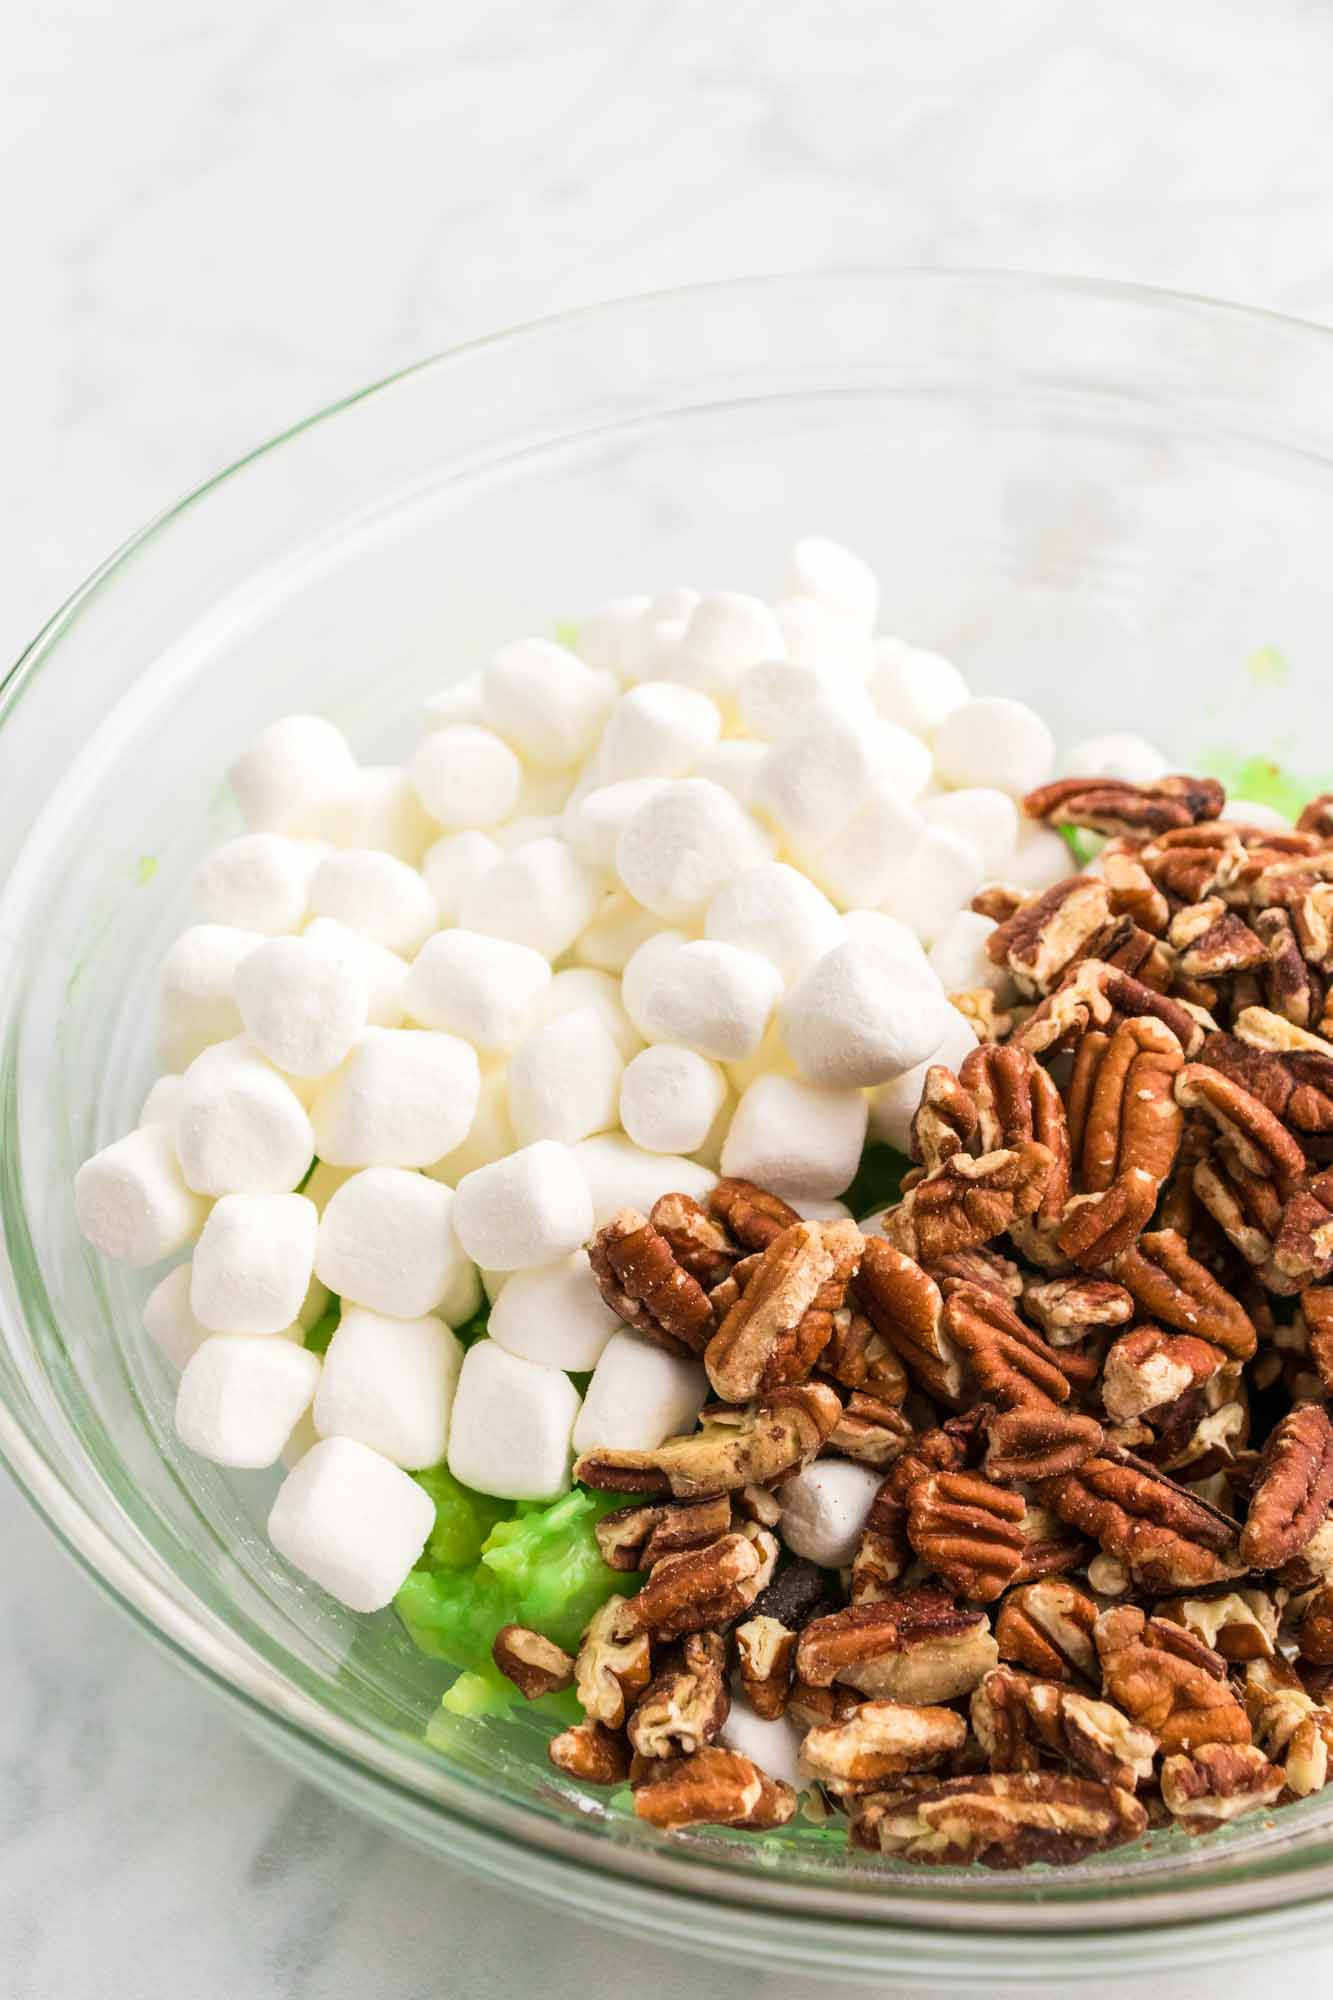 Pistachio pudding, pecans, and marshmallows in a glass bowl.